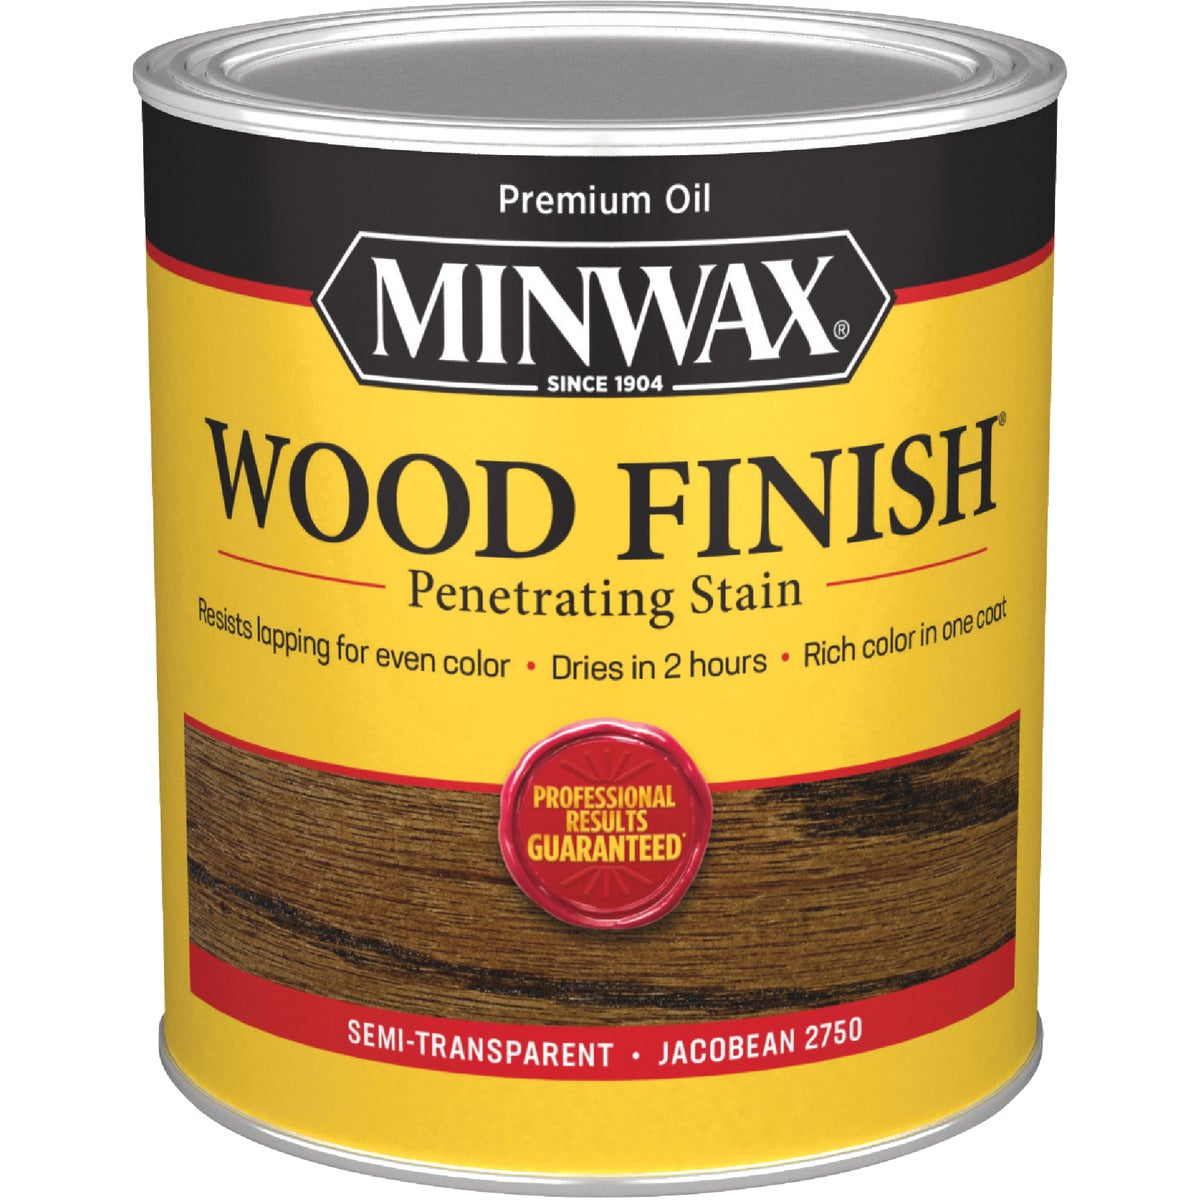 JACOBEAN WOOD STAIN - 70014 by Minwax Company